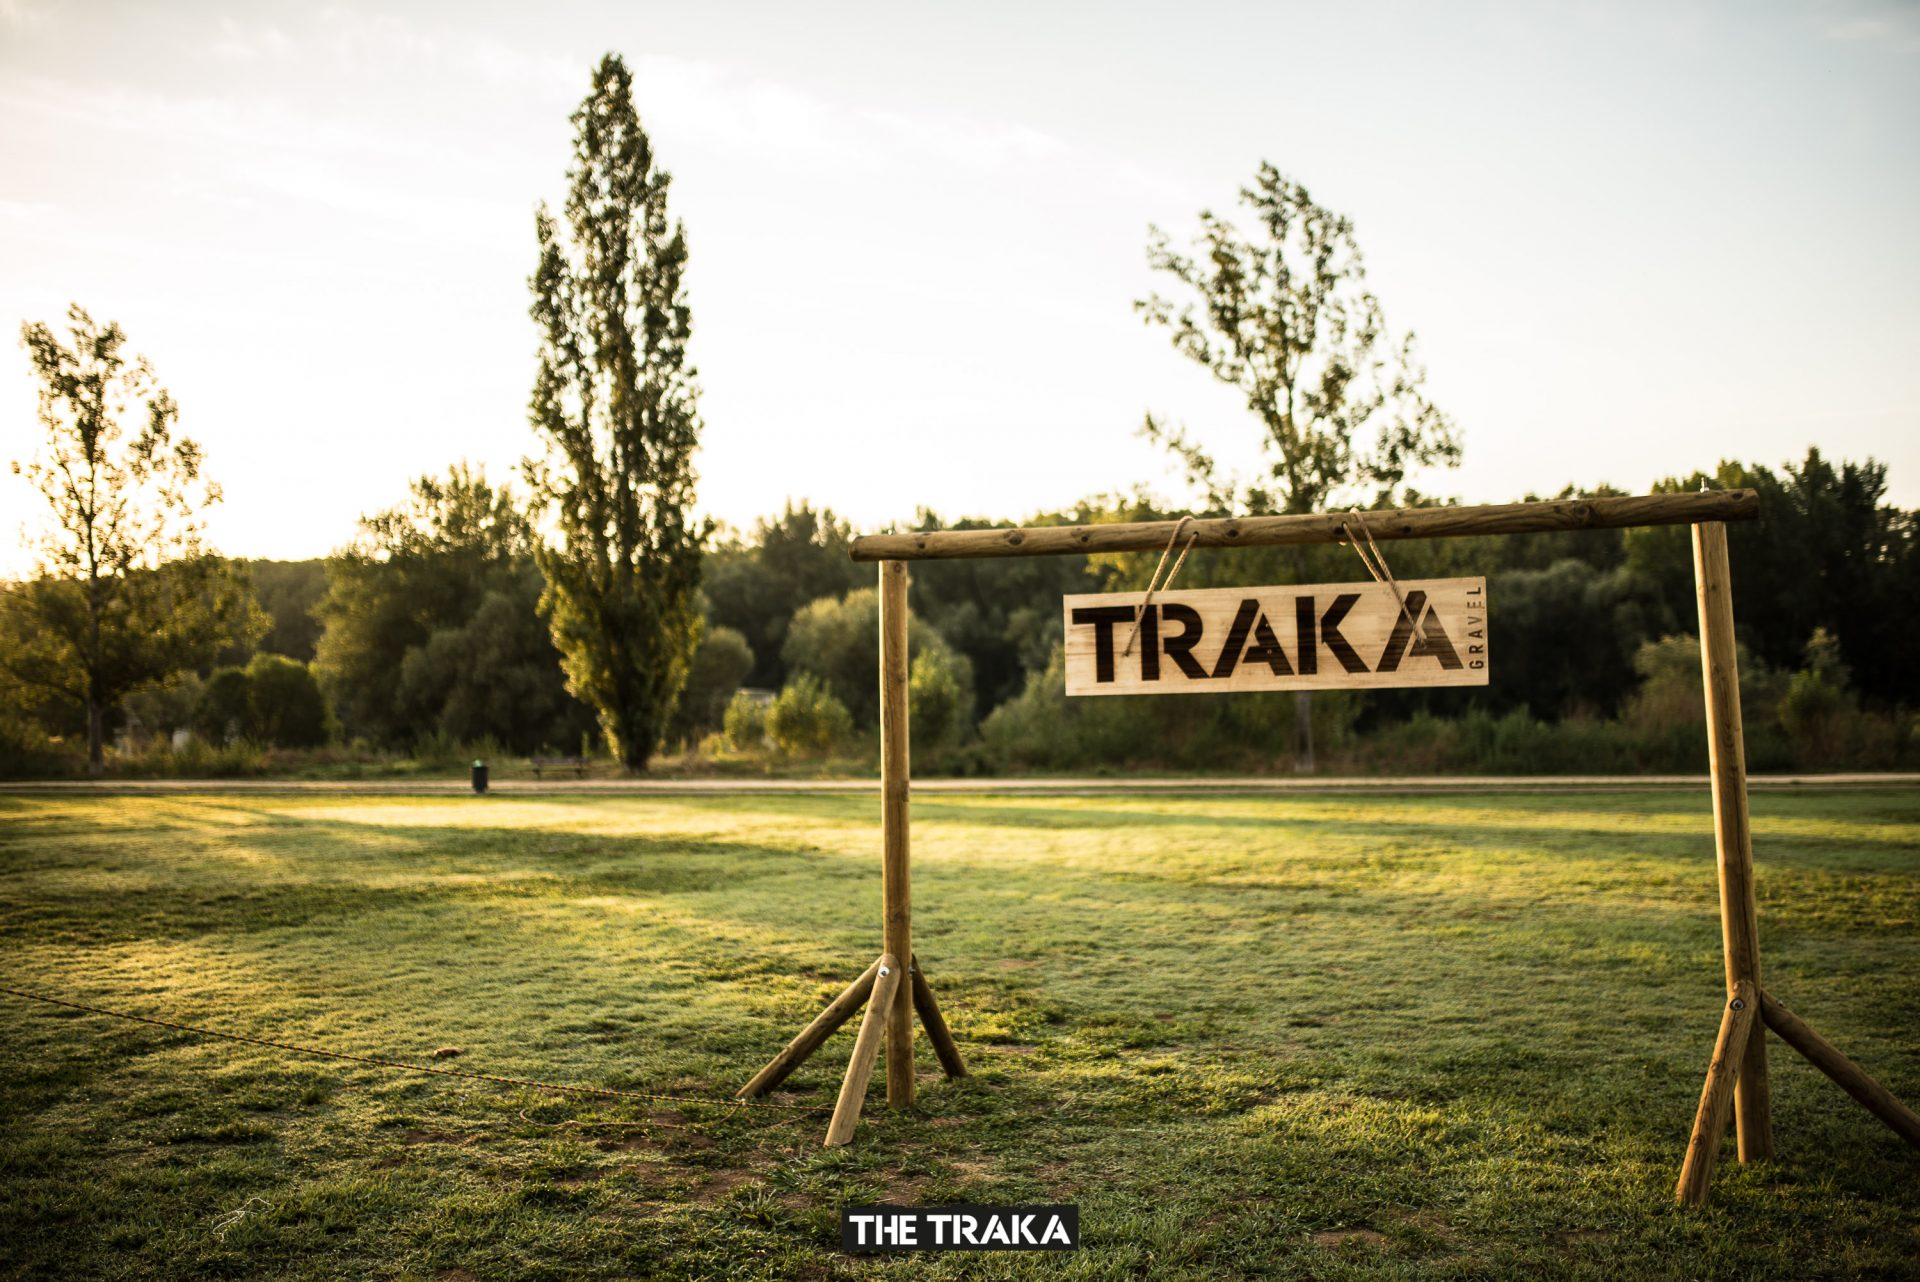 The Traka – Gravel Girona